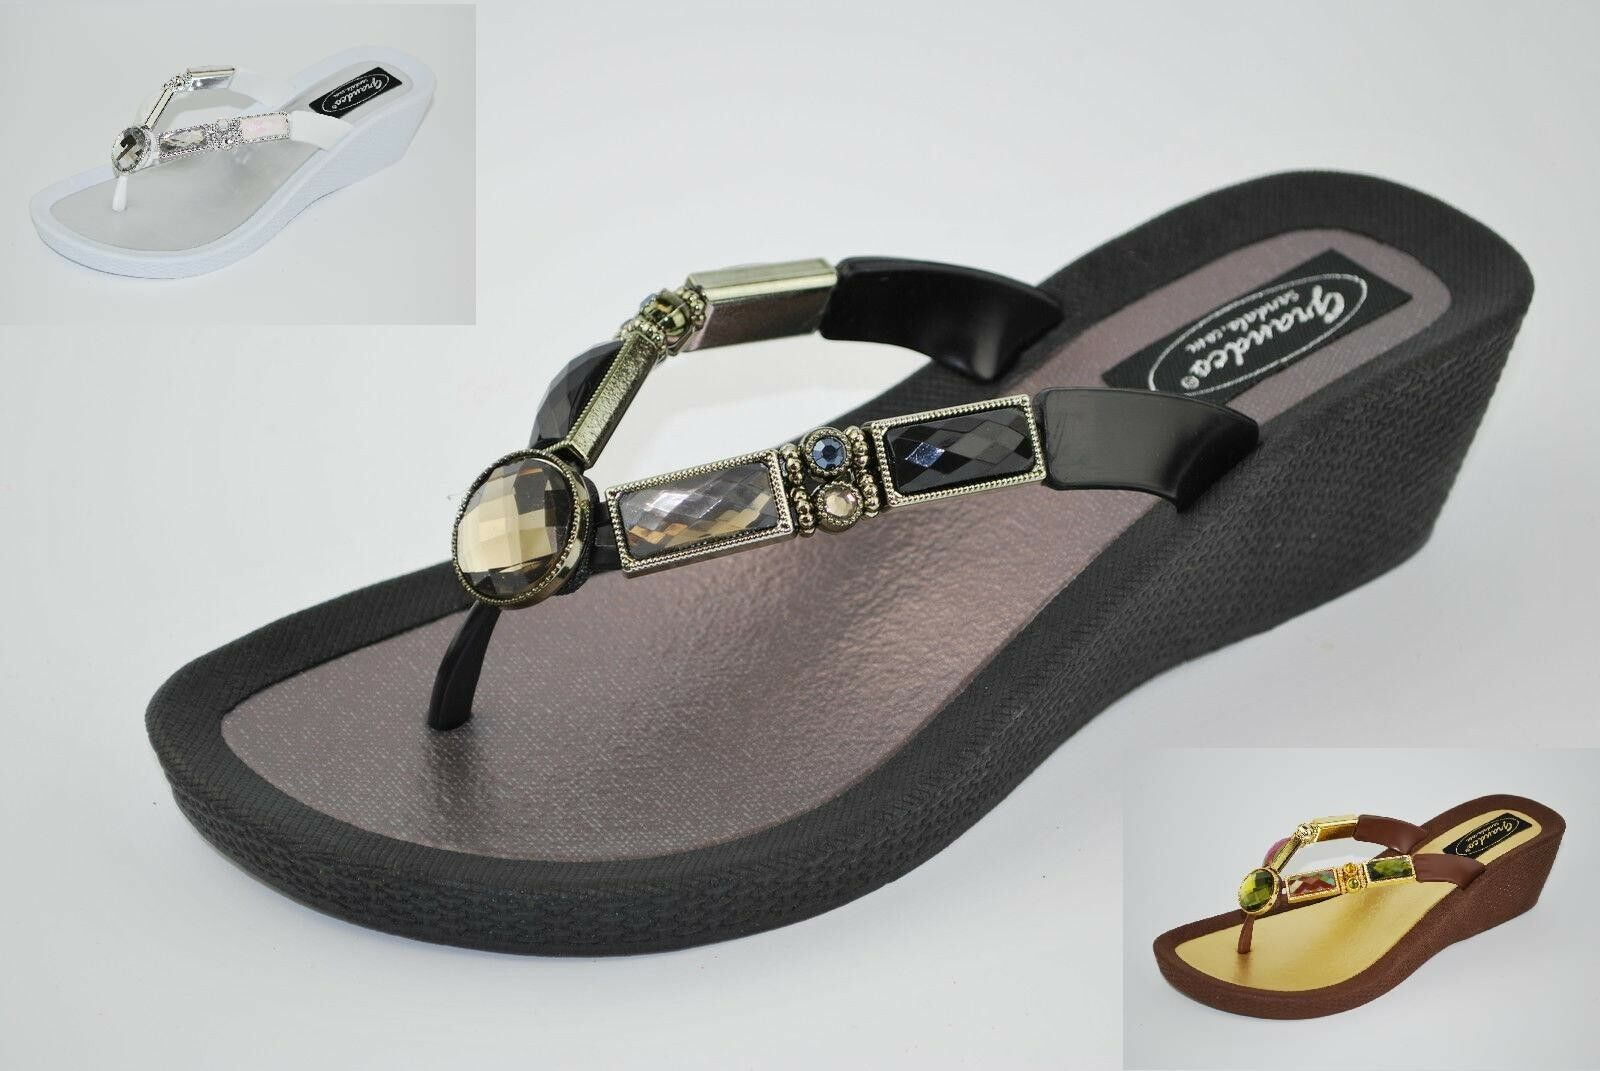 Grandco Ladies Black Bamboo Sandal Jeweled WedgeThong Black Ladies Brown or White 26255E 33b0cb